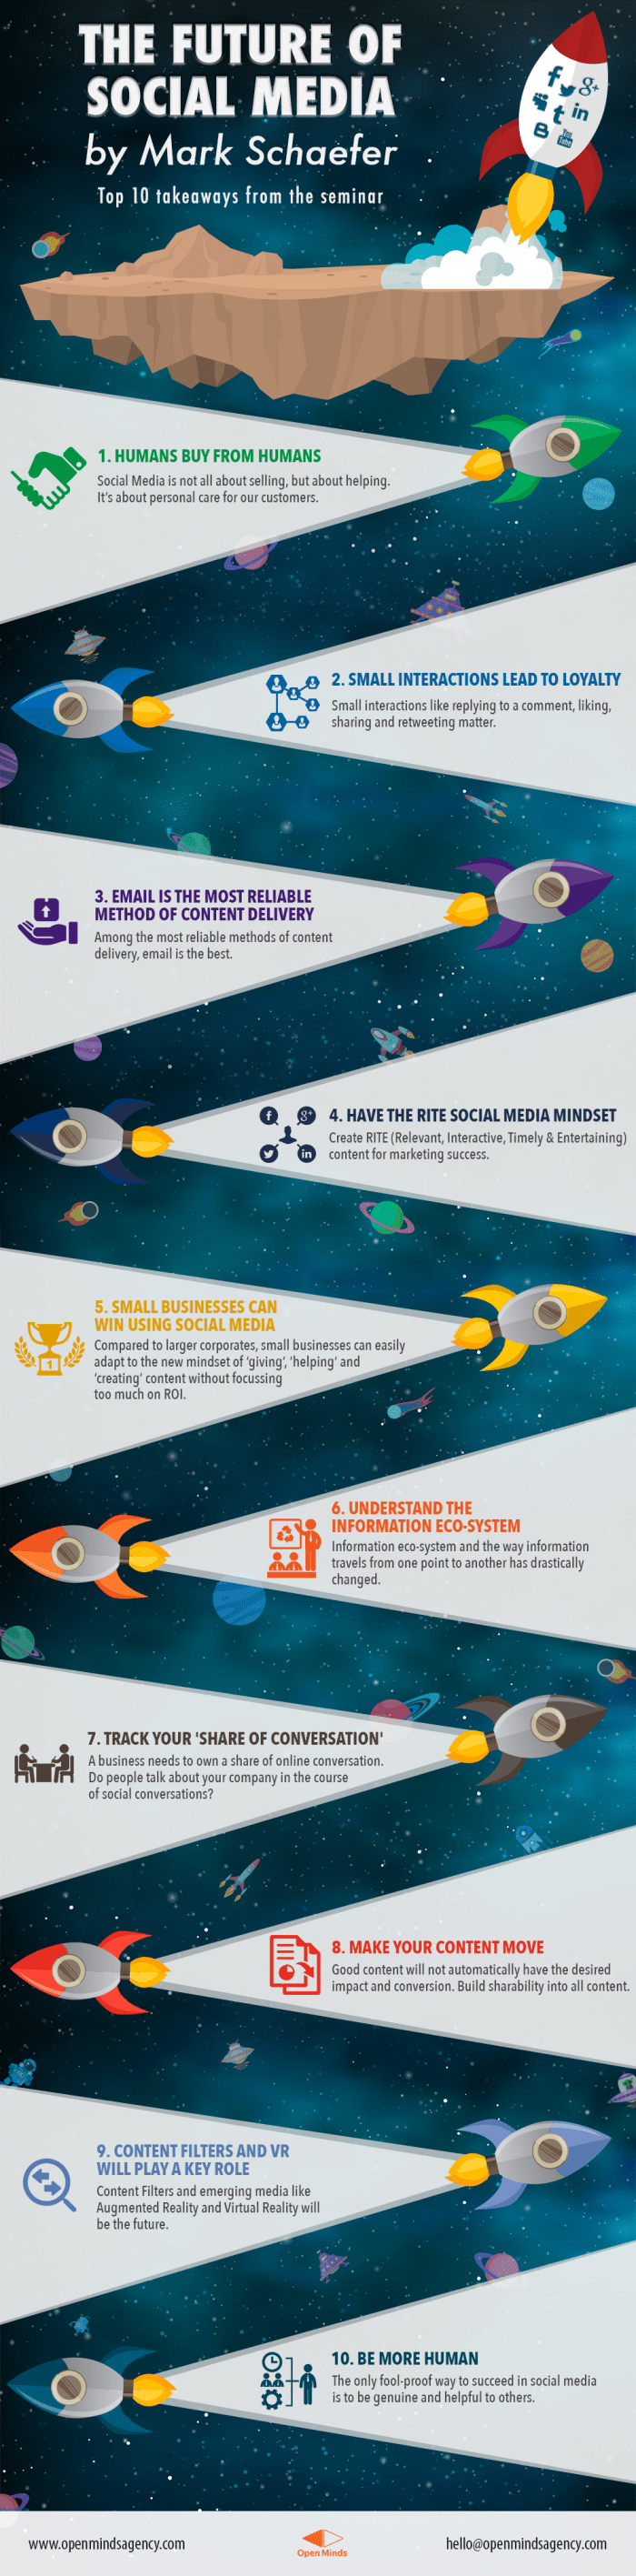 Infographic The Future of Social Media by Mark Schaefer